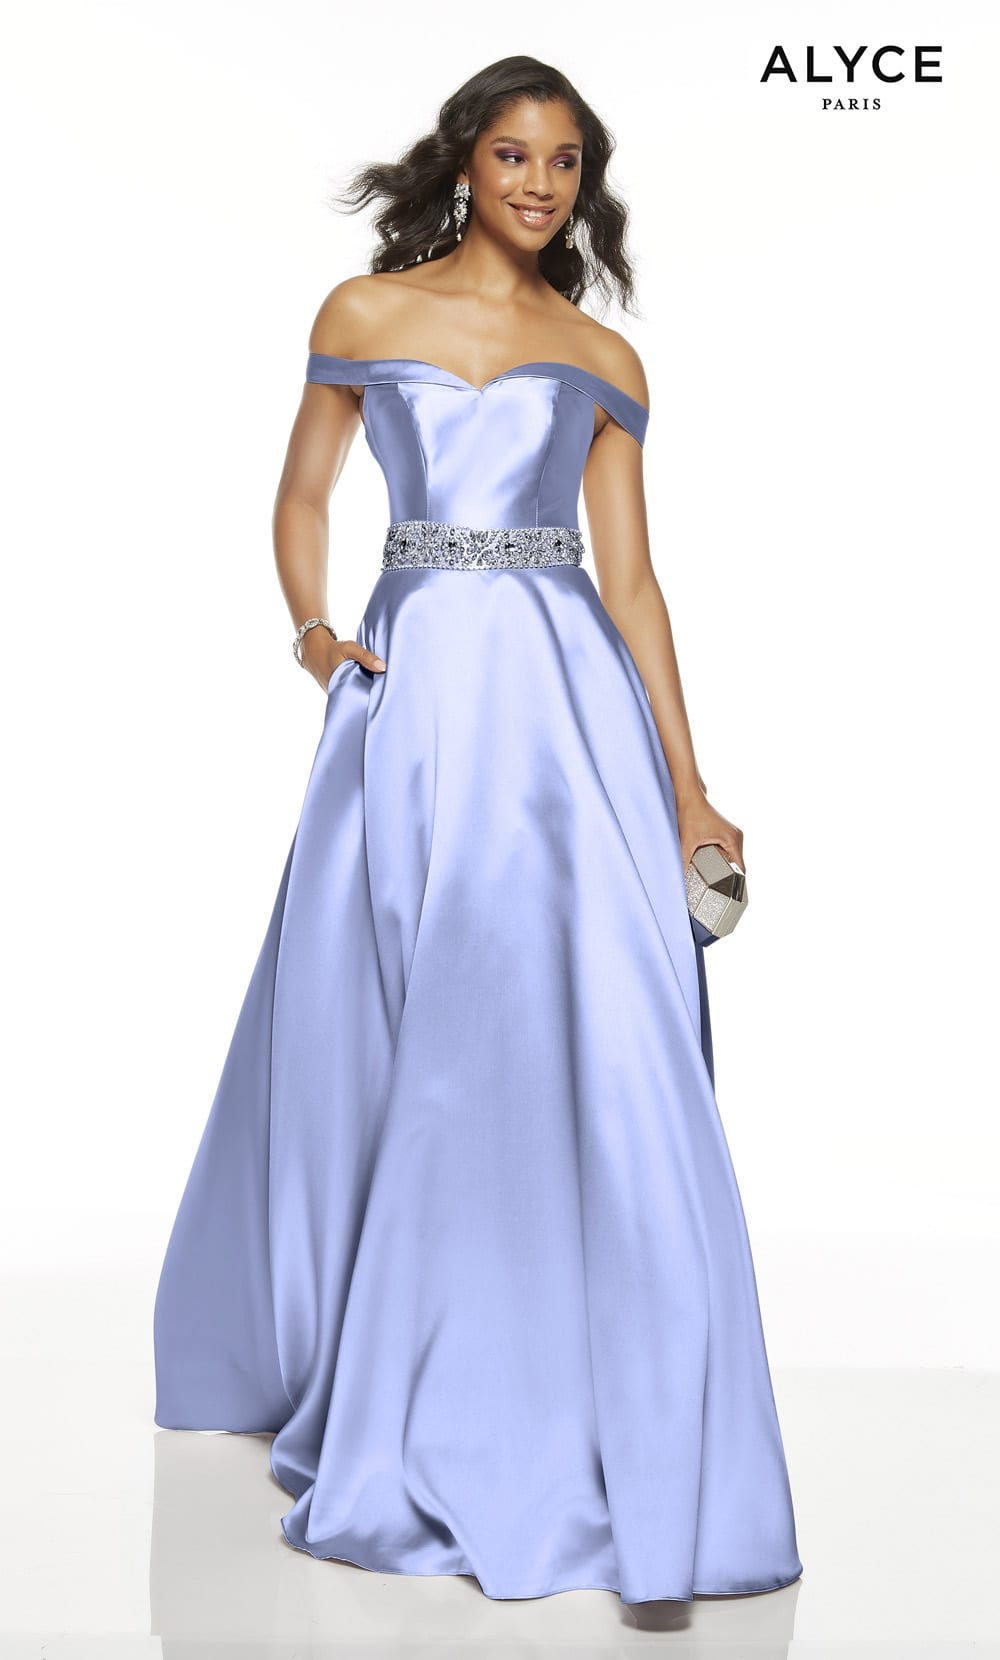 Alyce purple ball gown prom dress